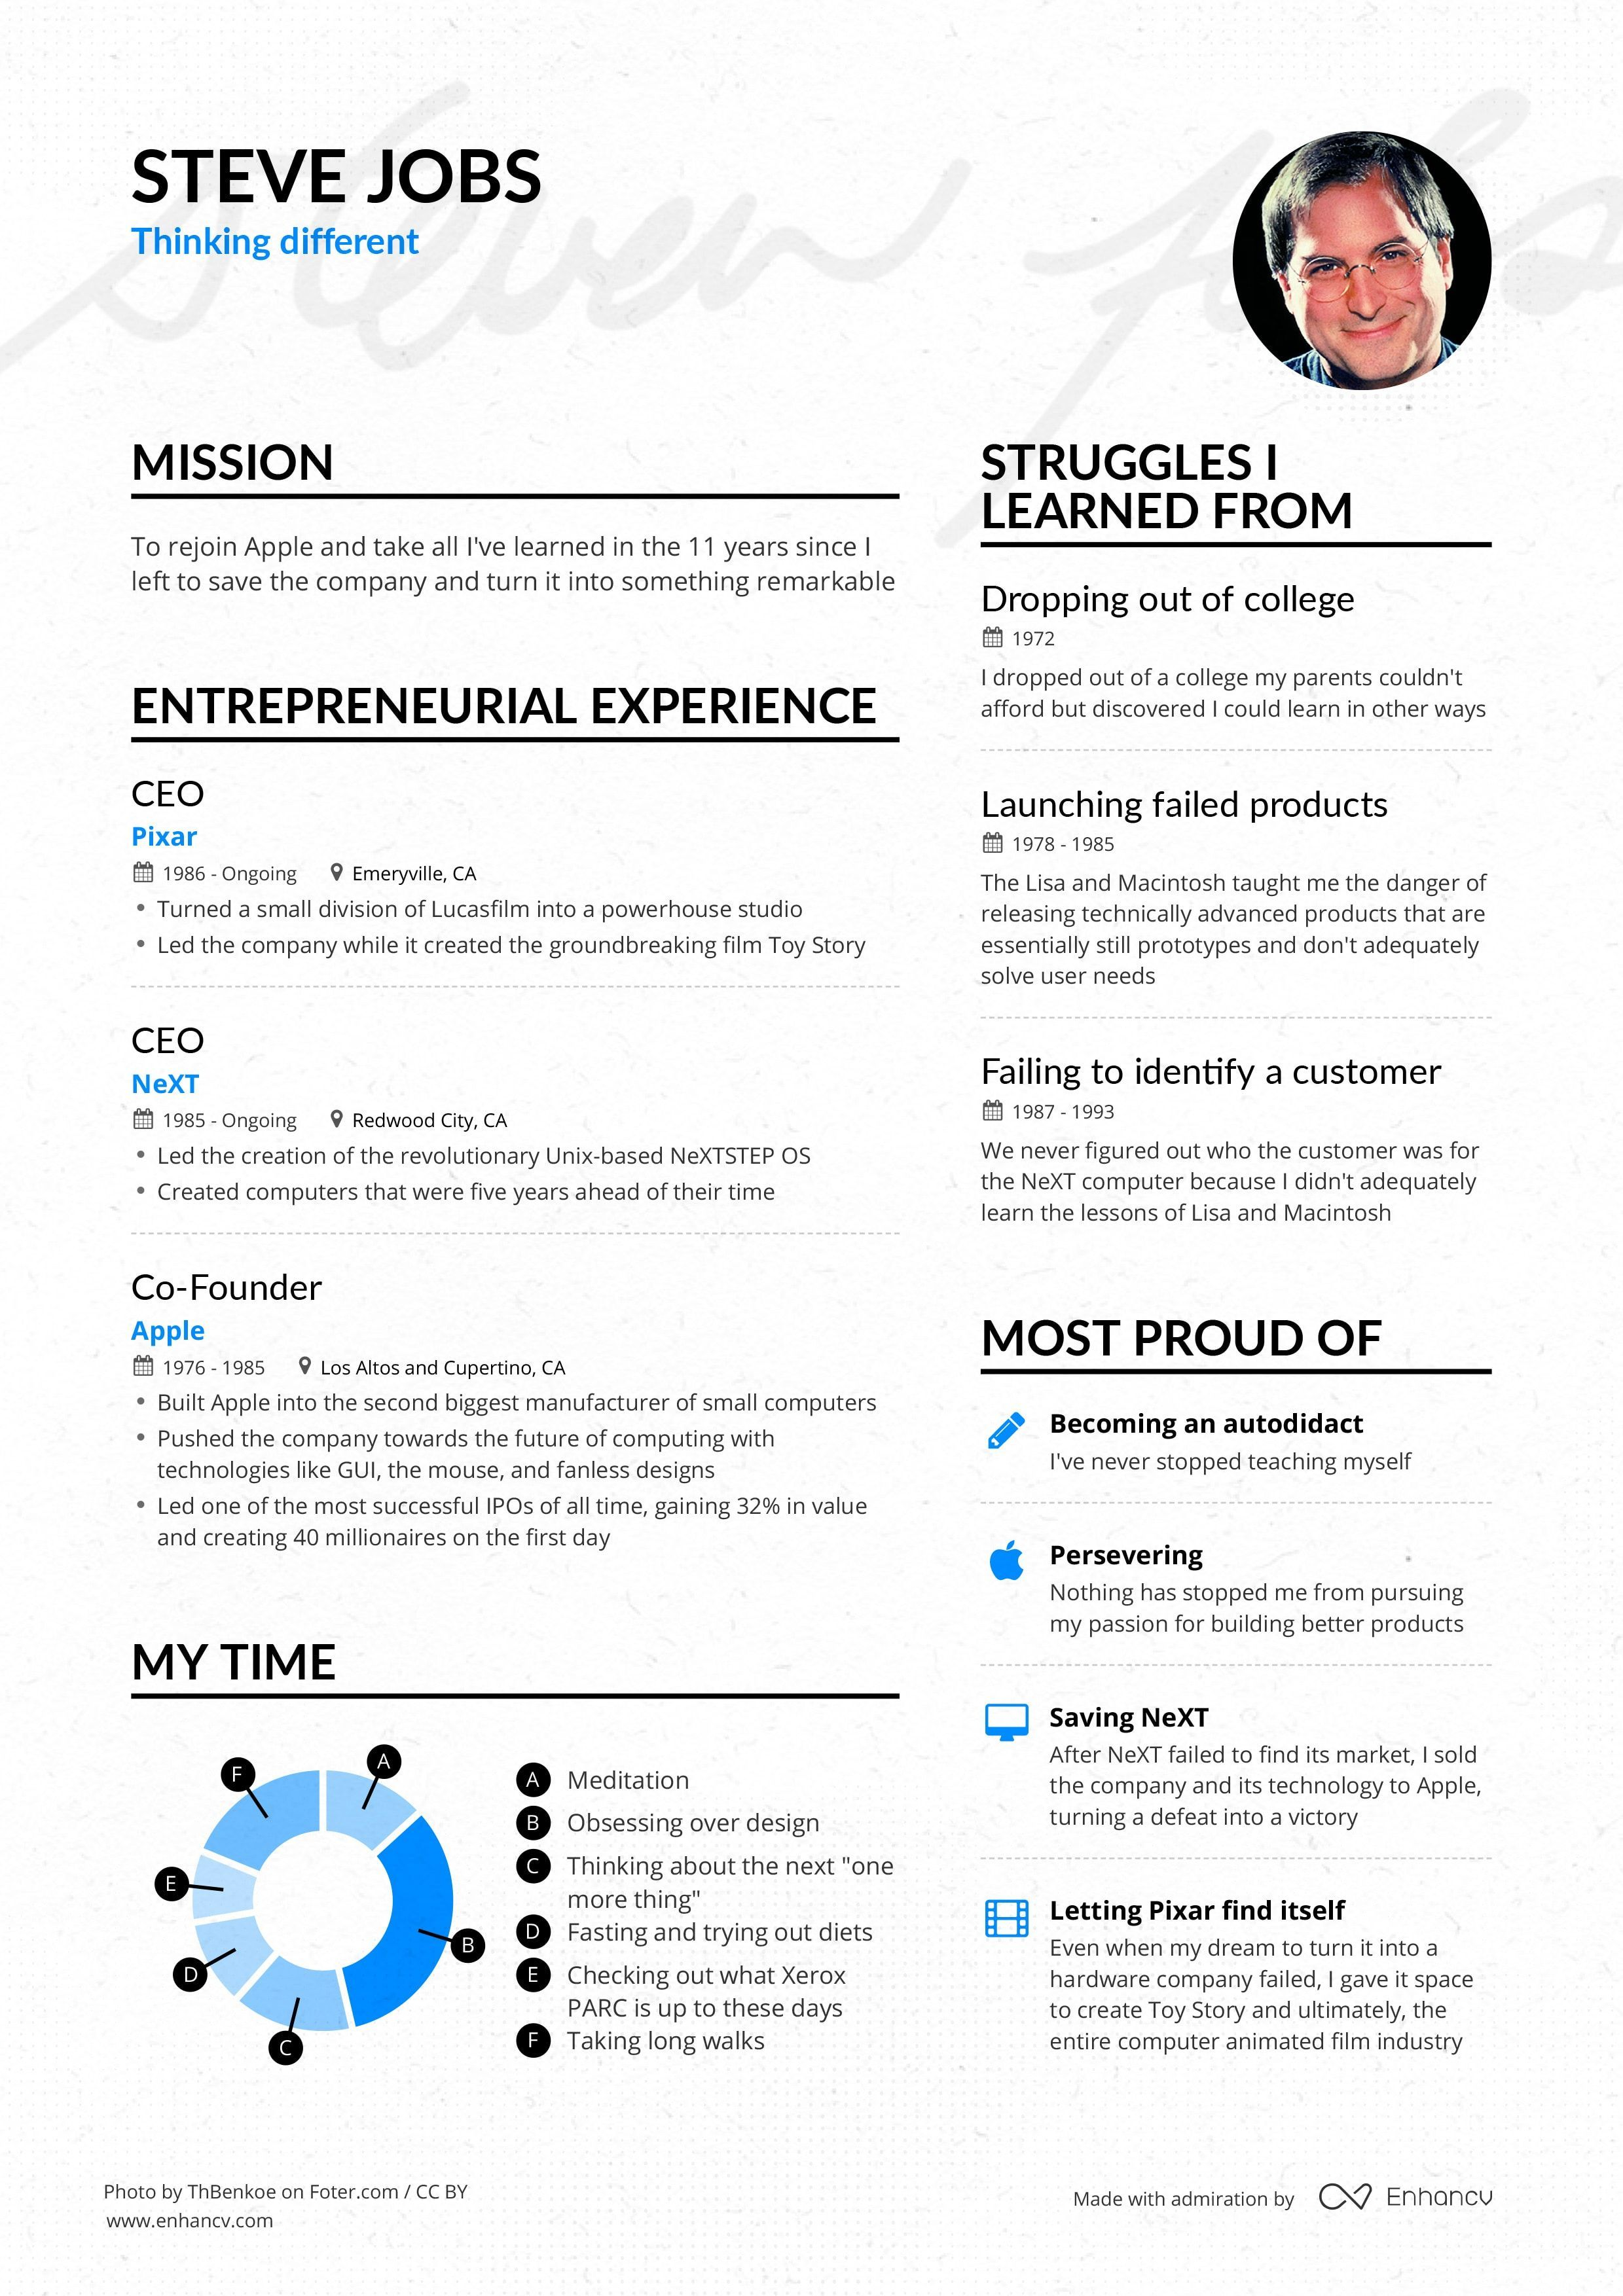 Ceo Resumes Impressive Former Apple Ceo Resume Steve Jobs  Resume Examples  Pinterest .